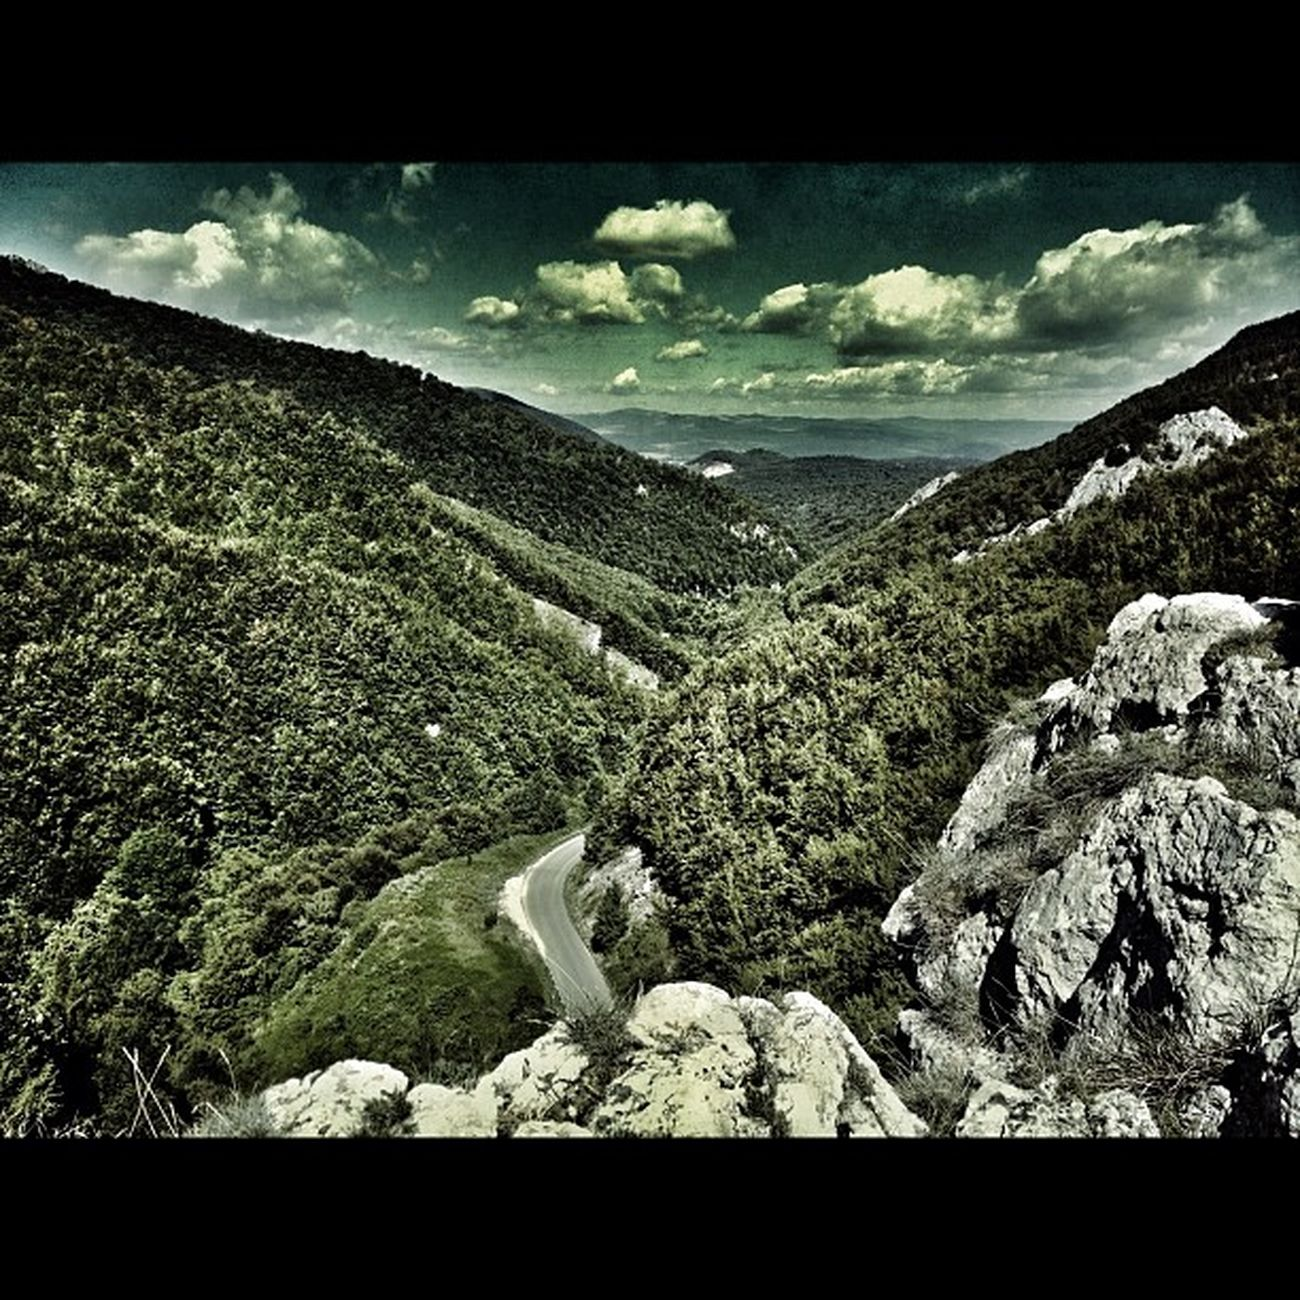 Slovakia Mojtin Summer Holiday forestinstagram instadaily snapseed mountainroad